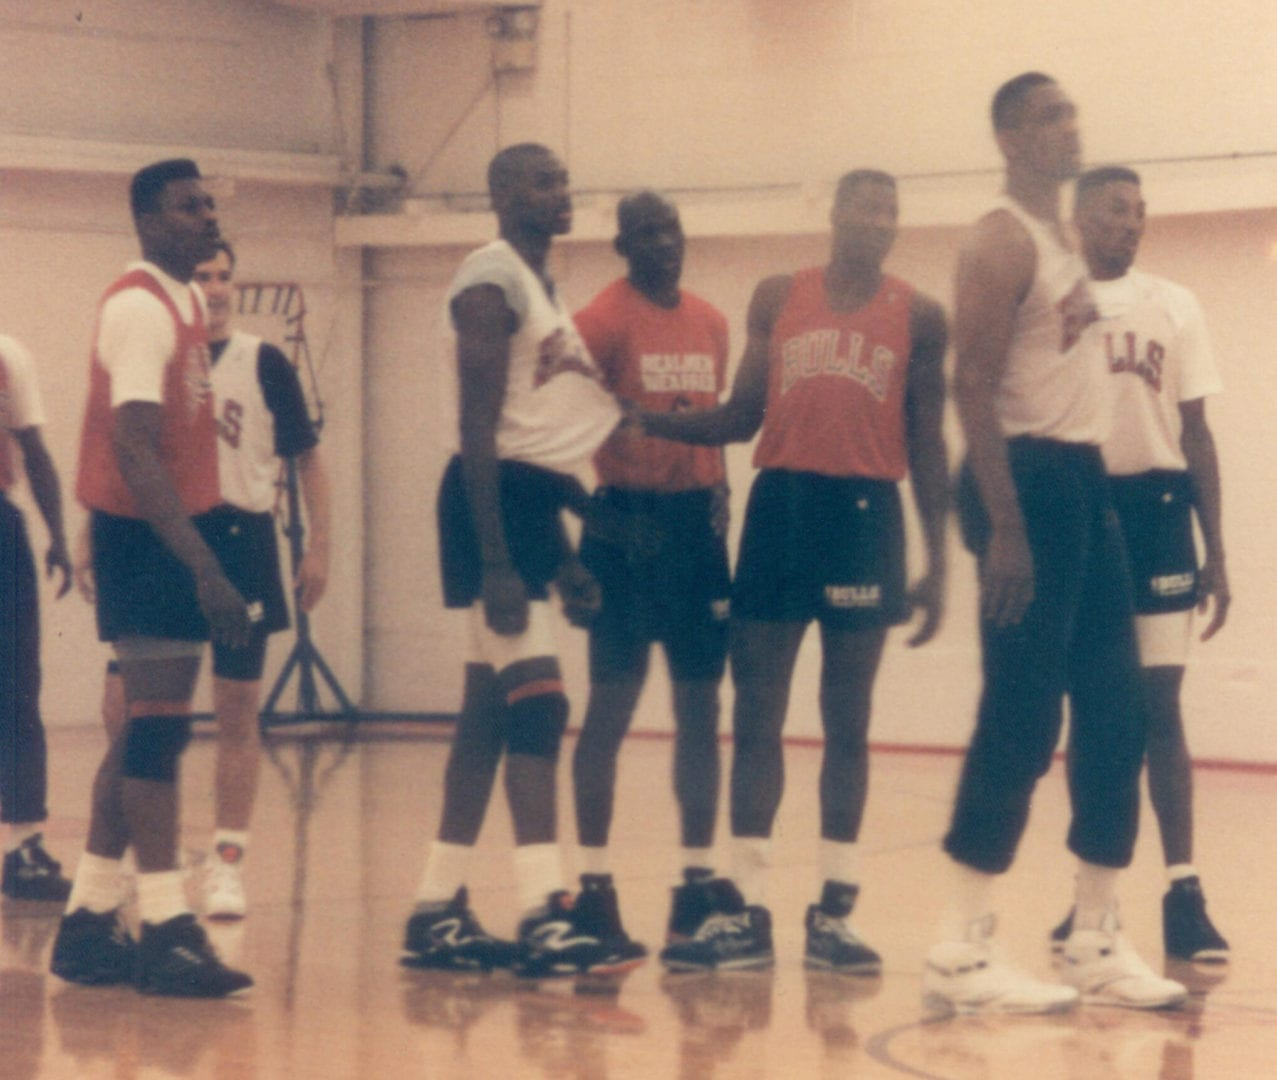 An old photo of basketball players in practice